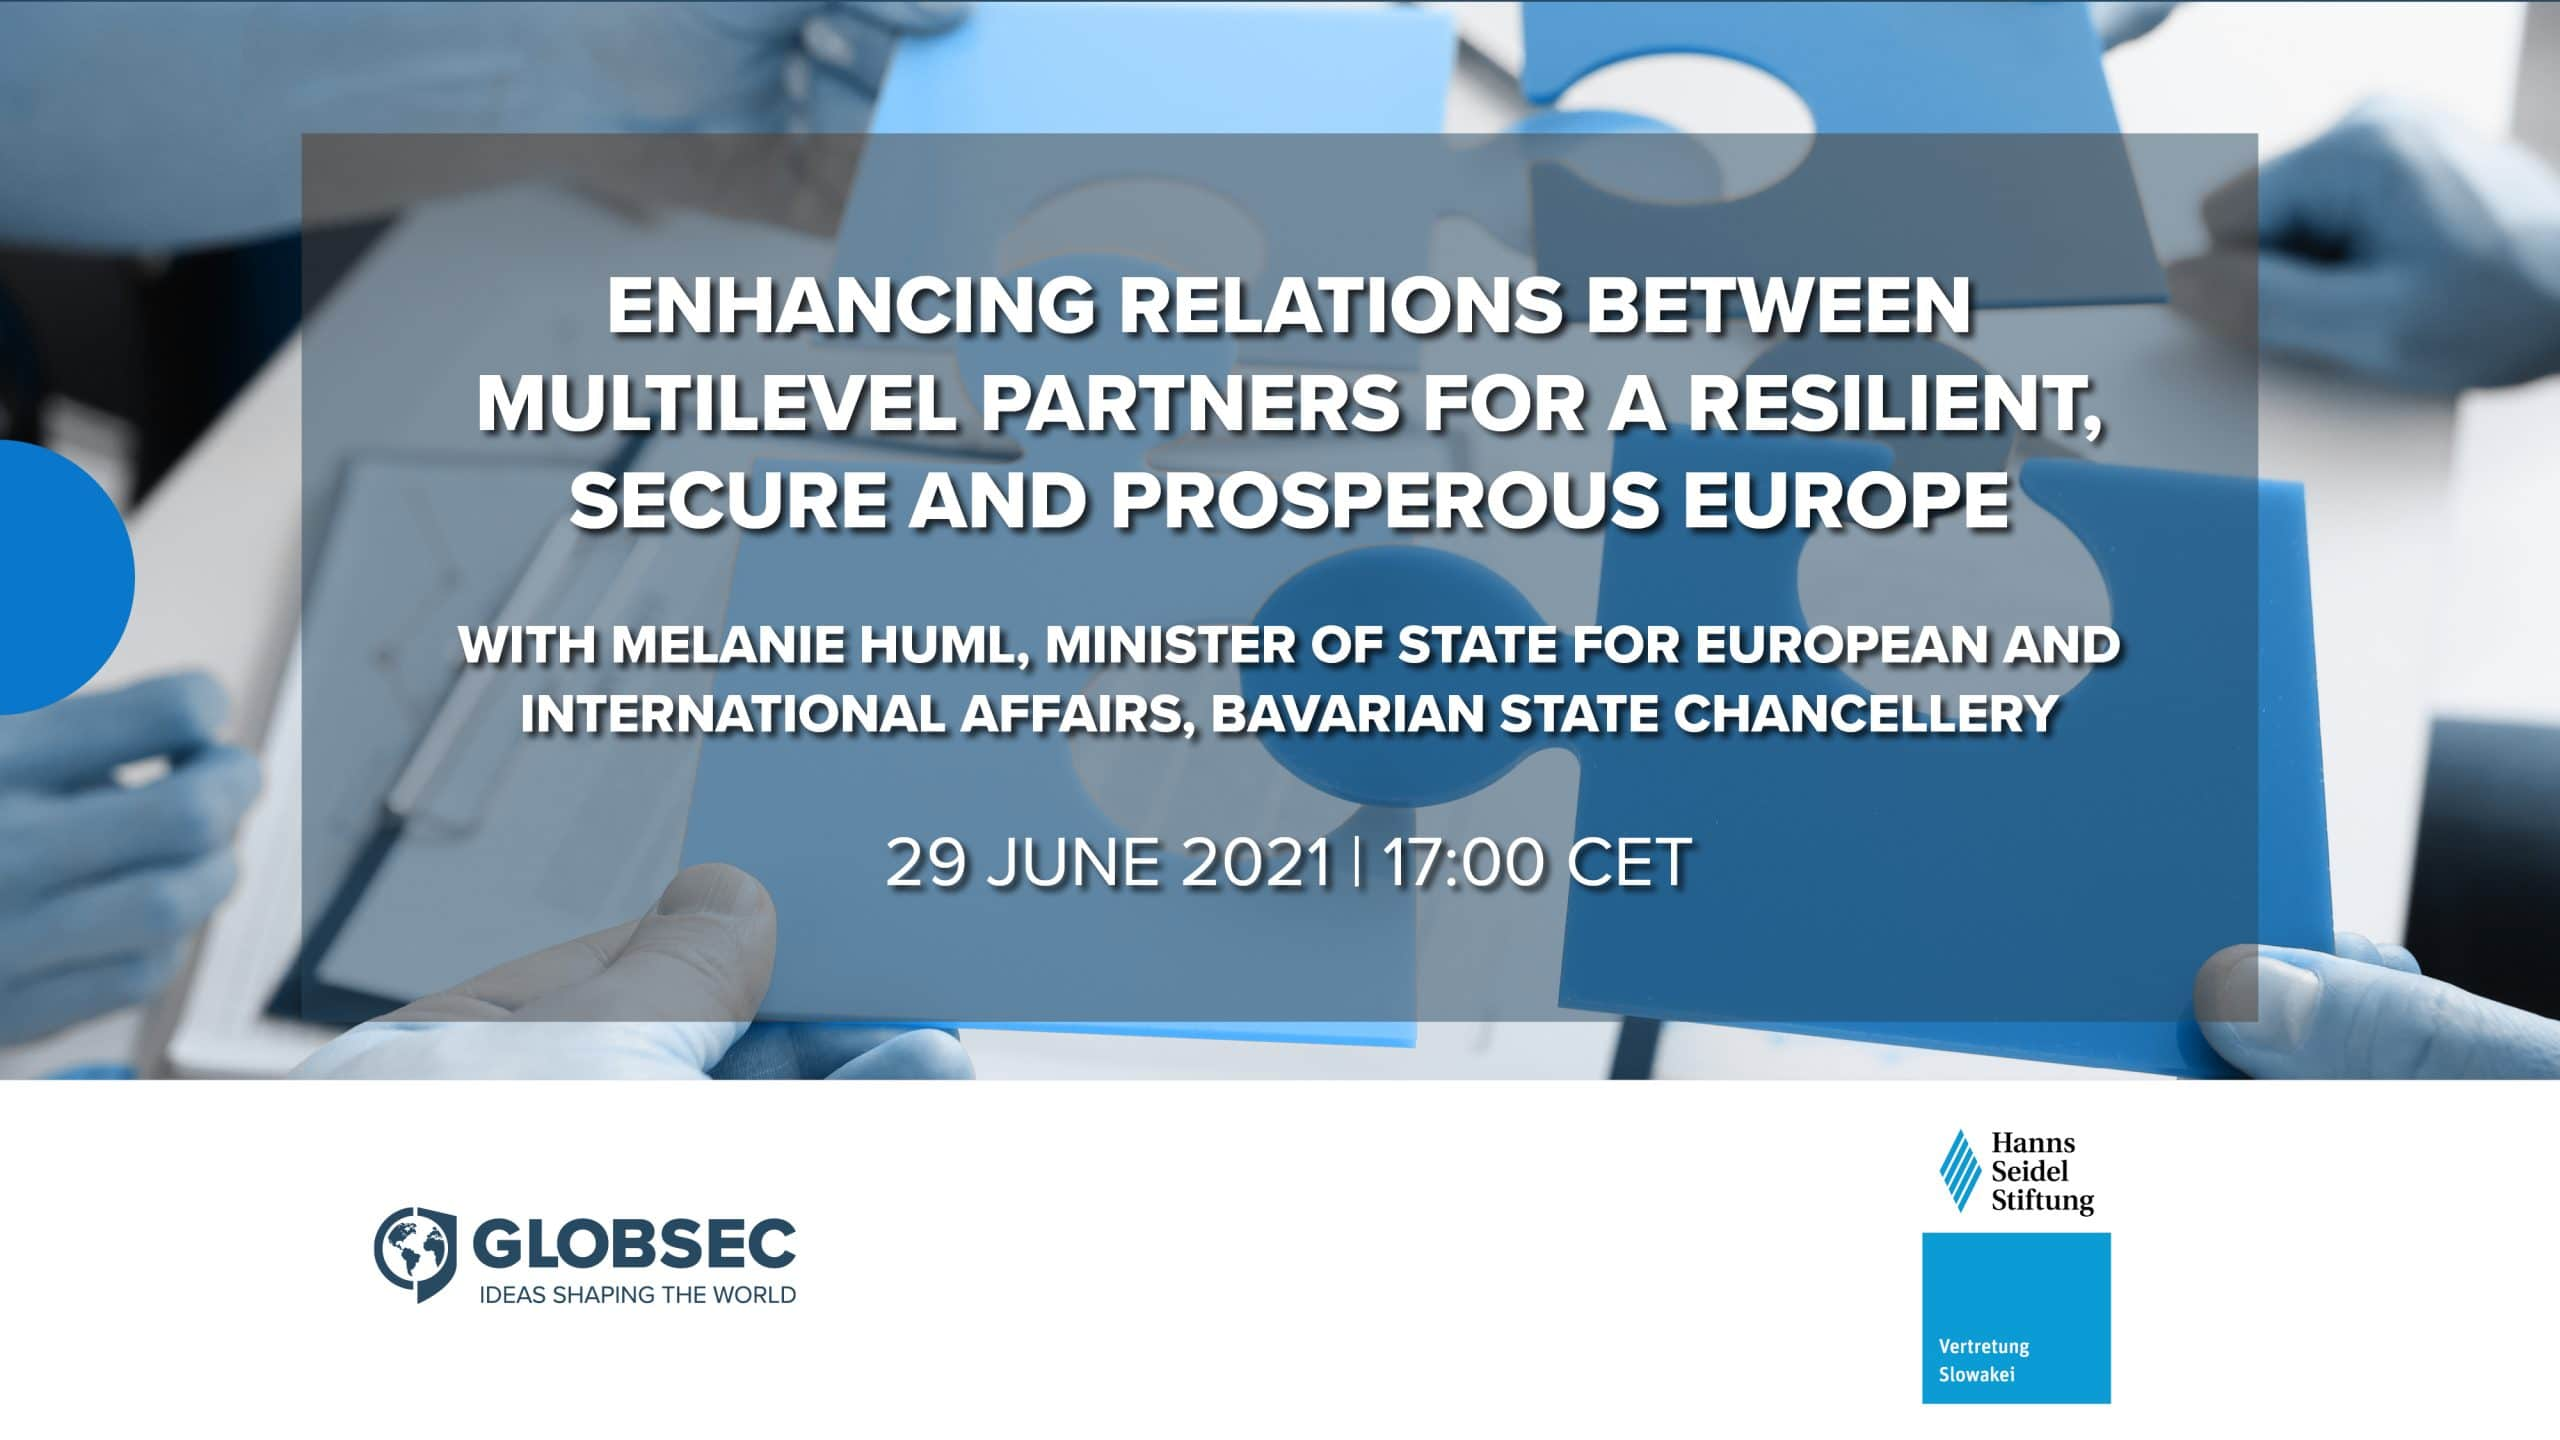 Enhancing Relations between Multilevel Partners for a Resilient, Secure and Prosperous Europe